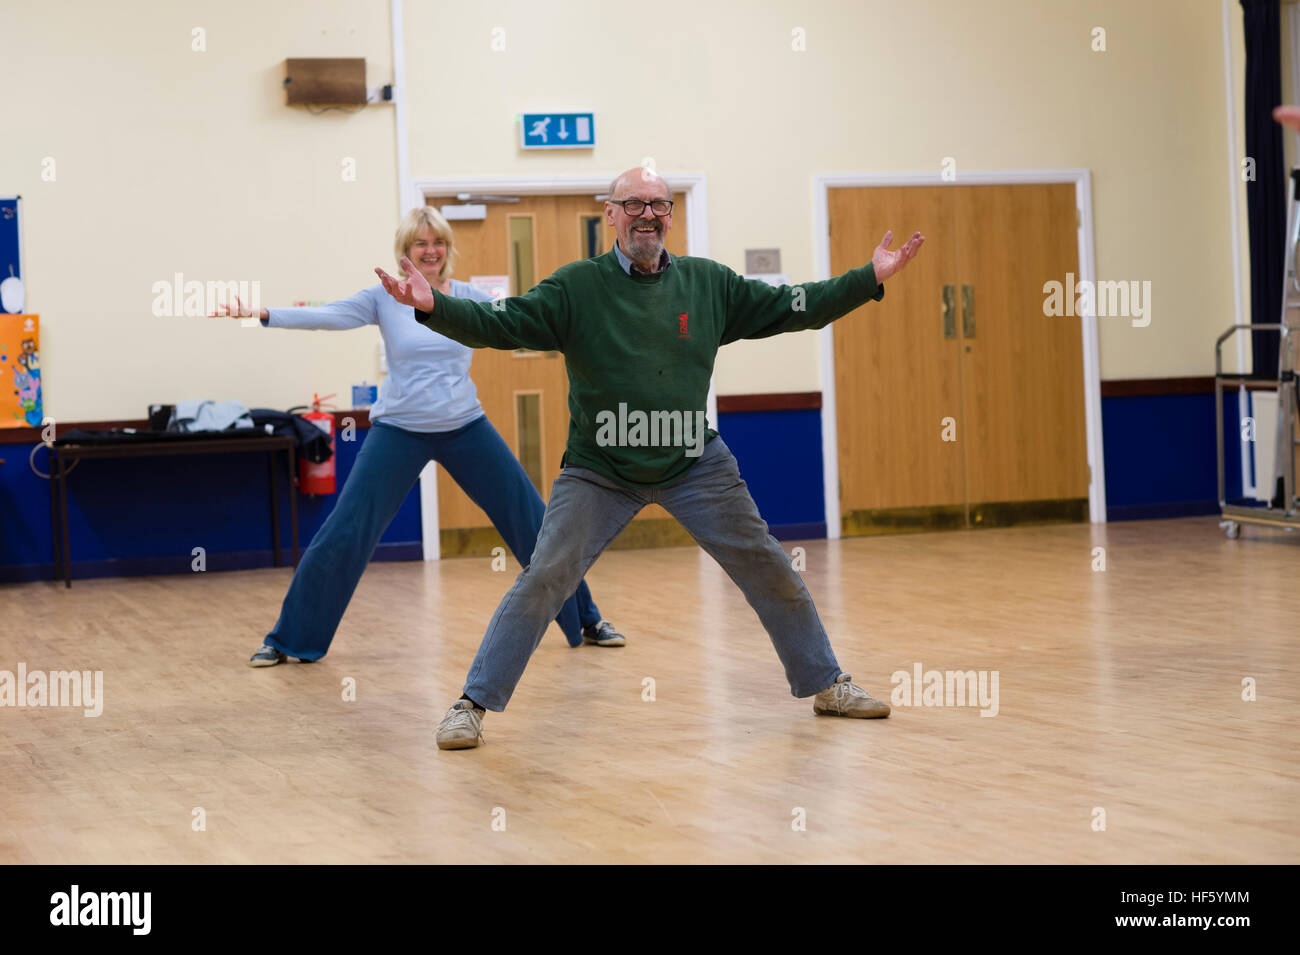 Two Middle aged people - man and woman,  taking part in a Tai Chi exercise workshop lesson class at Tregaron Memorial - Stock Image